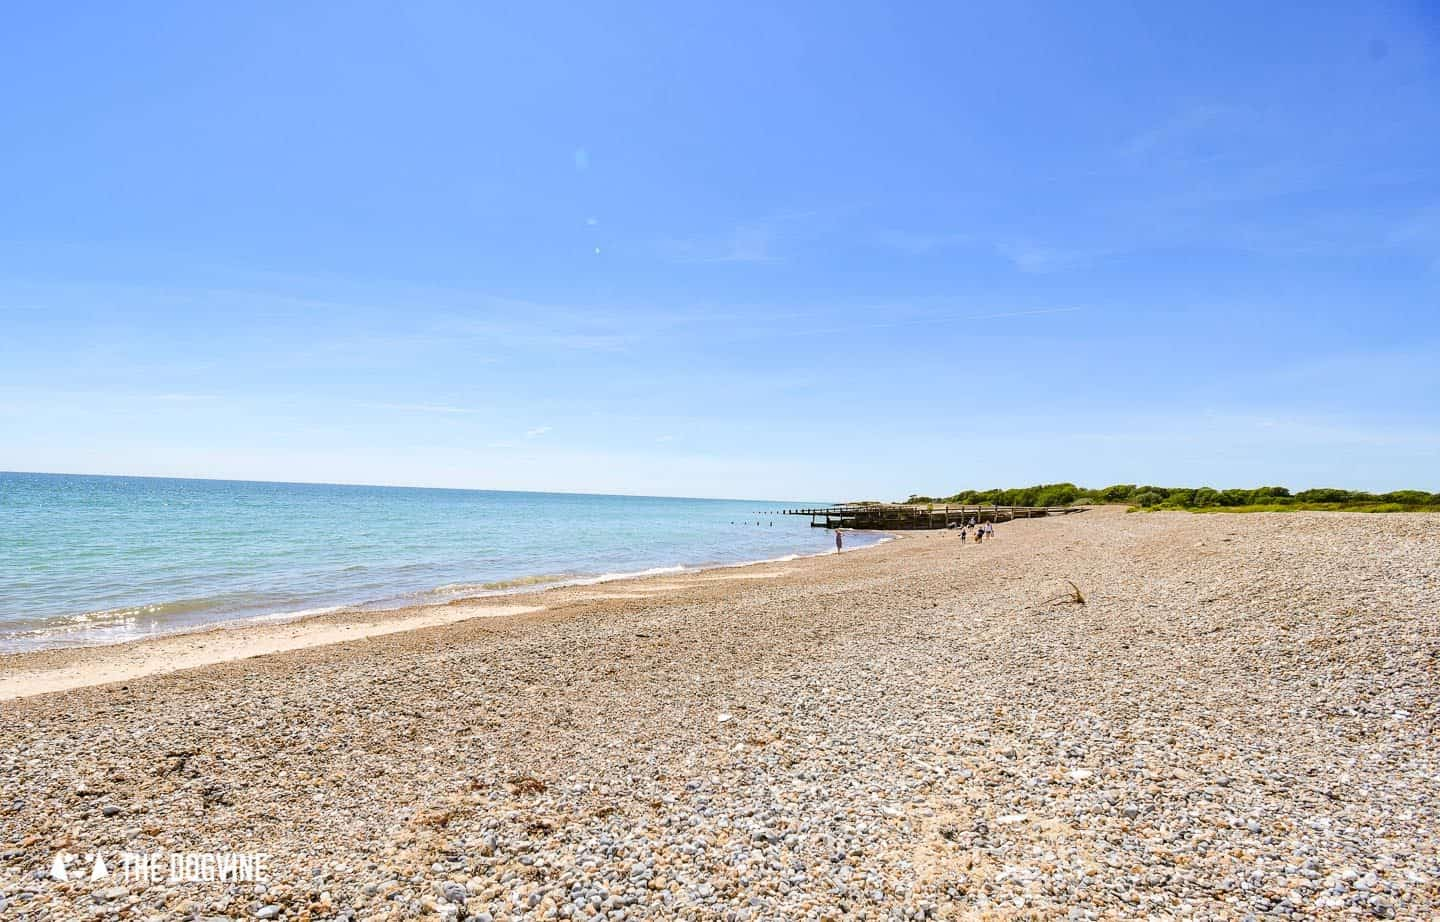 The Best Dog-Friendly Beaches in West Sussex - Climping Beach 3